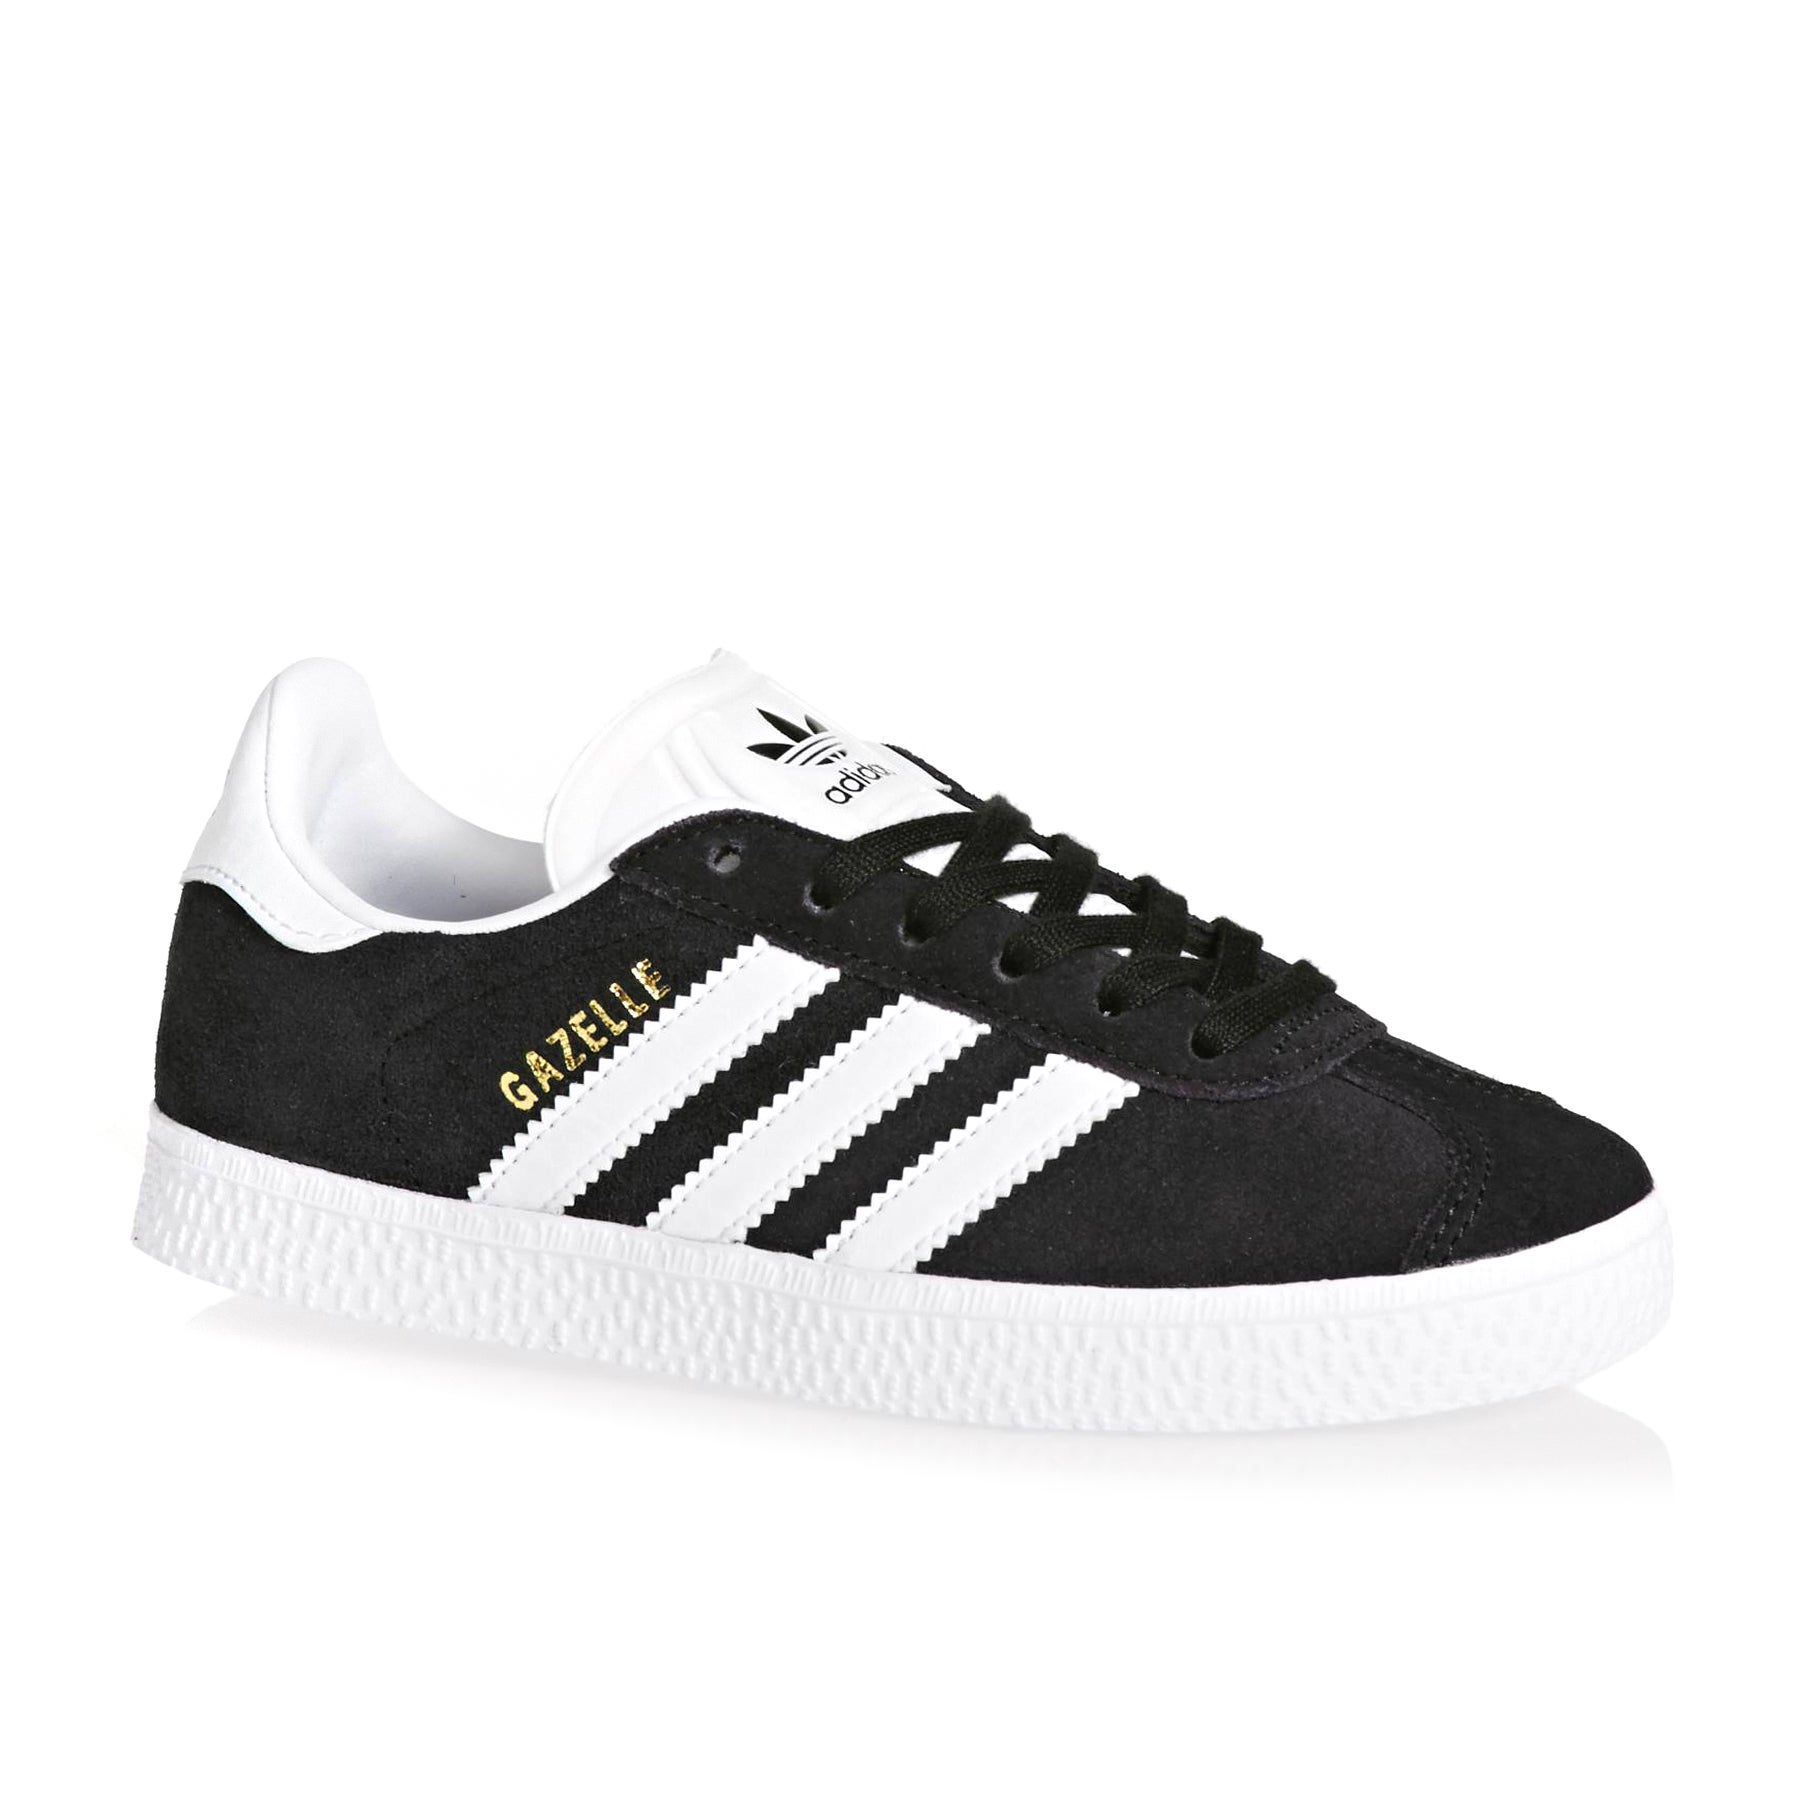 Adidas Originals Gazelle Crib Kids Shoes - Black White Gold